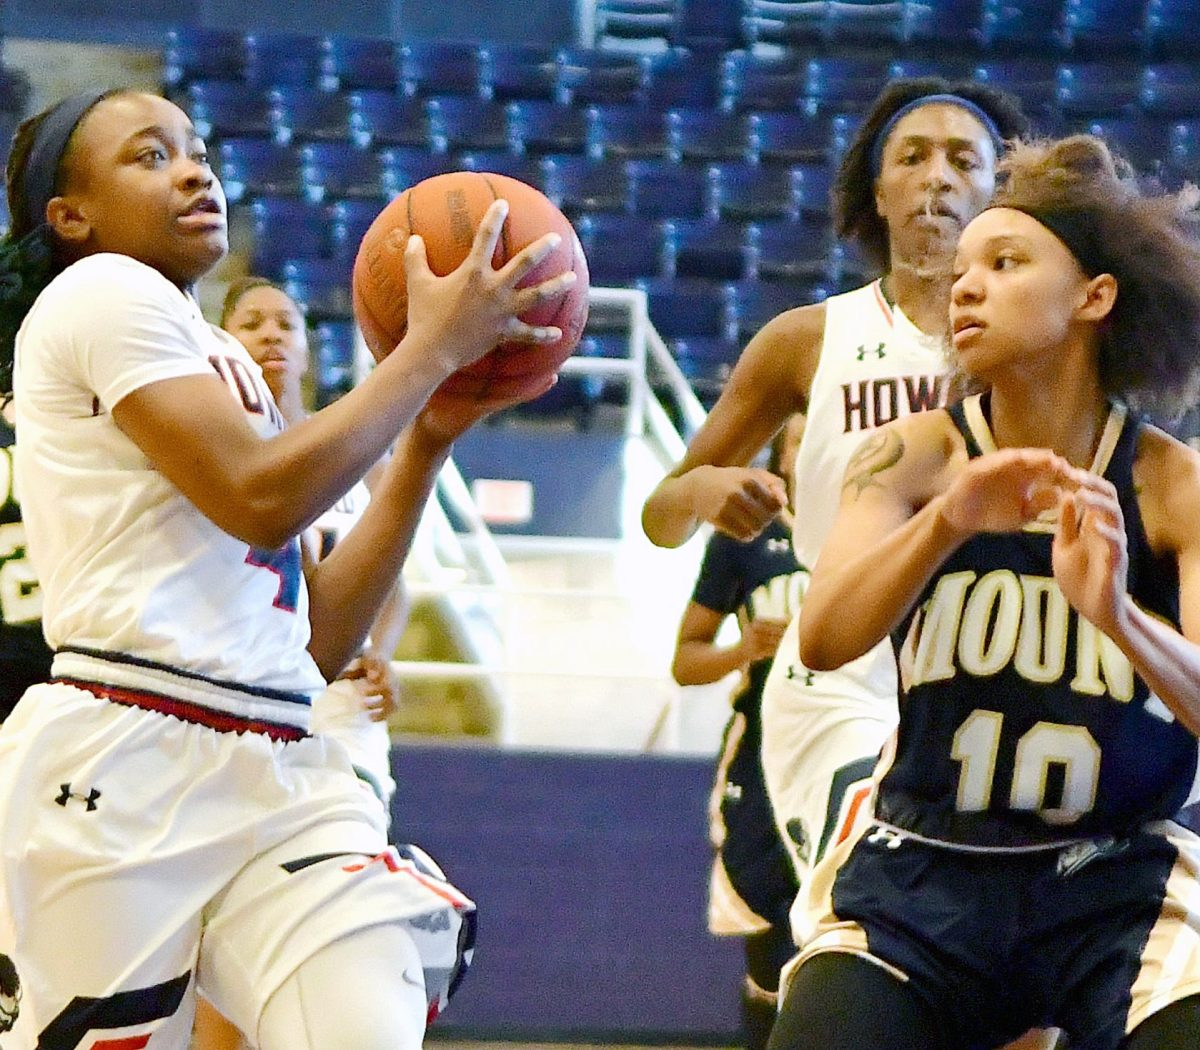 Howard Lady Bison guard Ayonna Williams, a product of D.C.'s Ballou Senior High School, drives past Mount St. Mary's Mountaineers guard Ashlee White in the second quarter of Howard's 95-62 win at Burr Gymnasium in Northwest on Saturday, Dec. 10. /Photo by John E. De Freitas